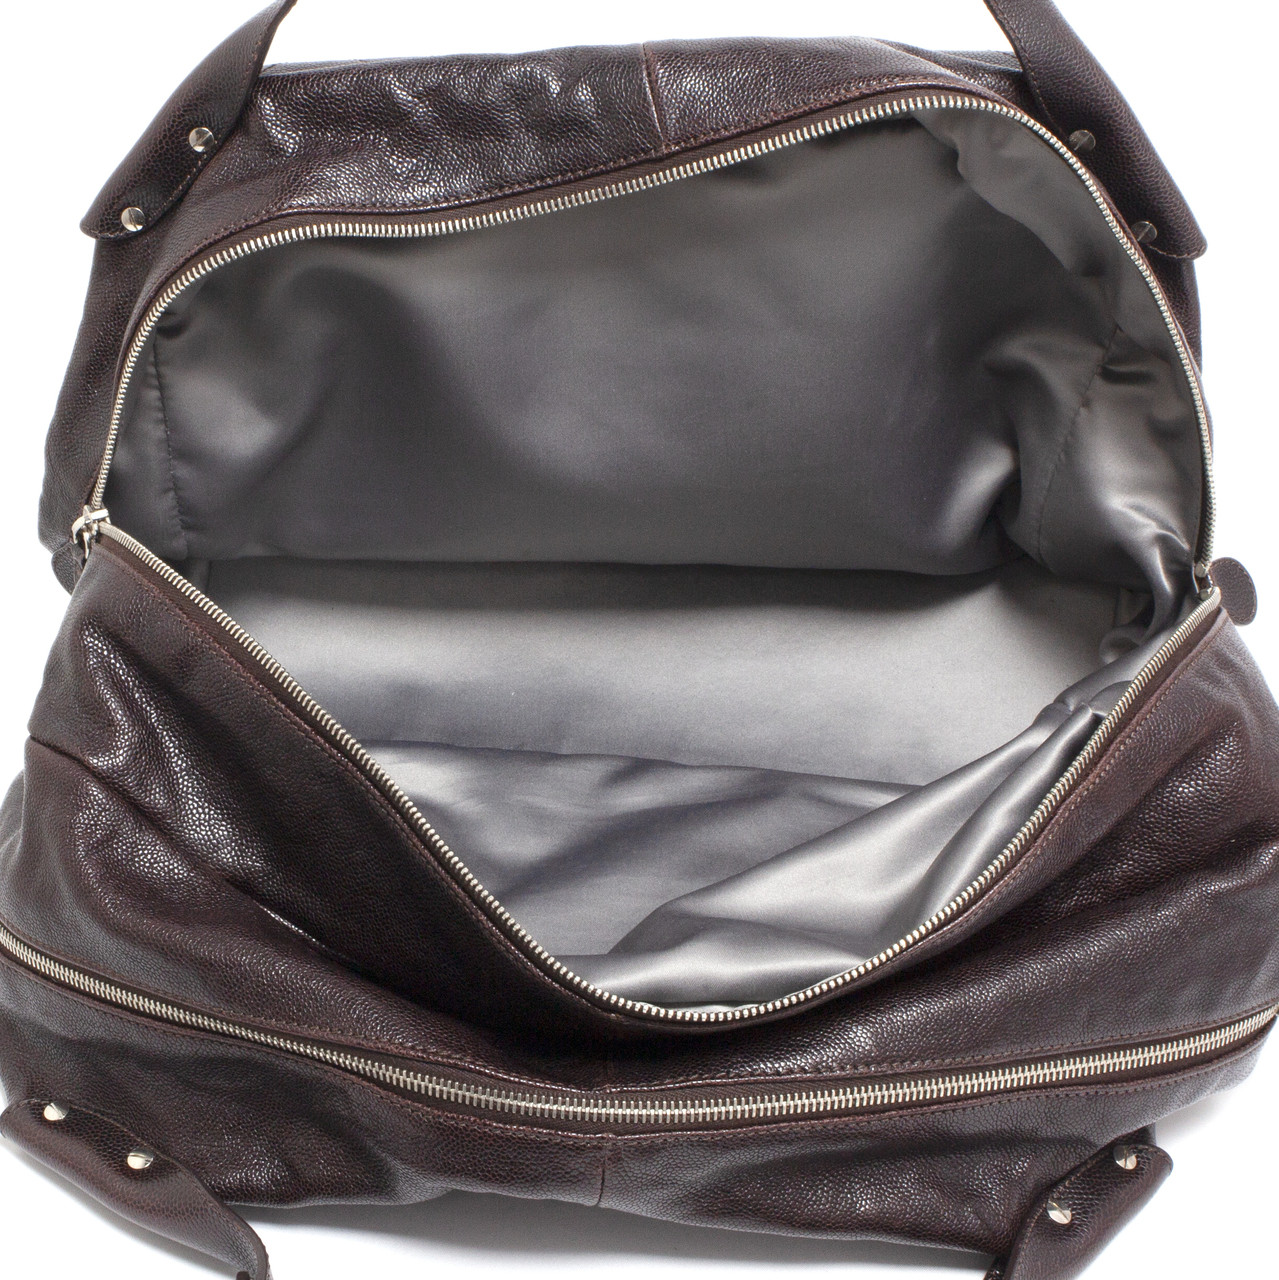 d8fd99def0985e Chanel Brown Glazed Caviar Pocket in the City Travel Bag - modaselle